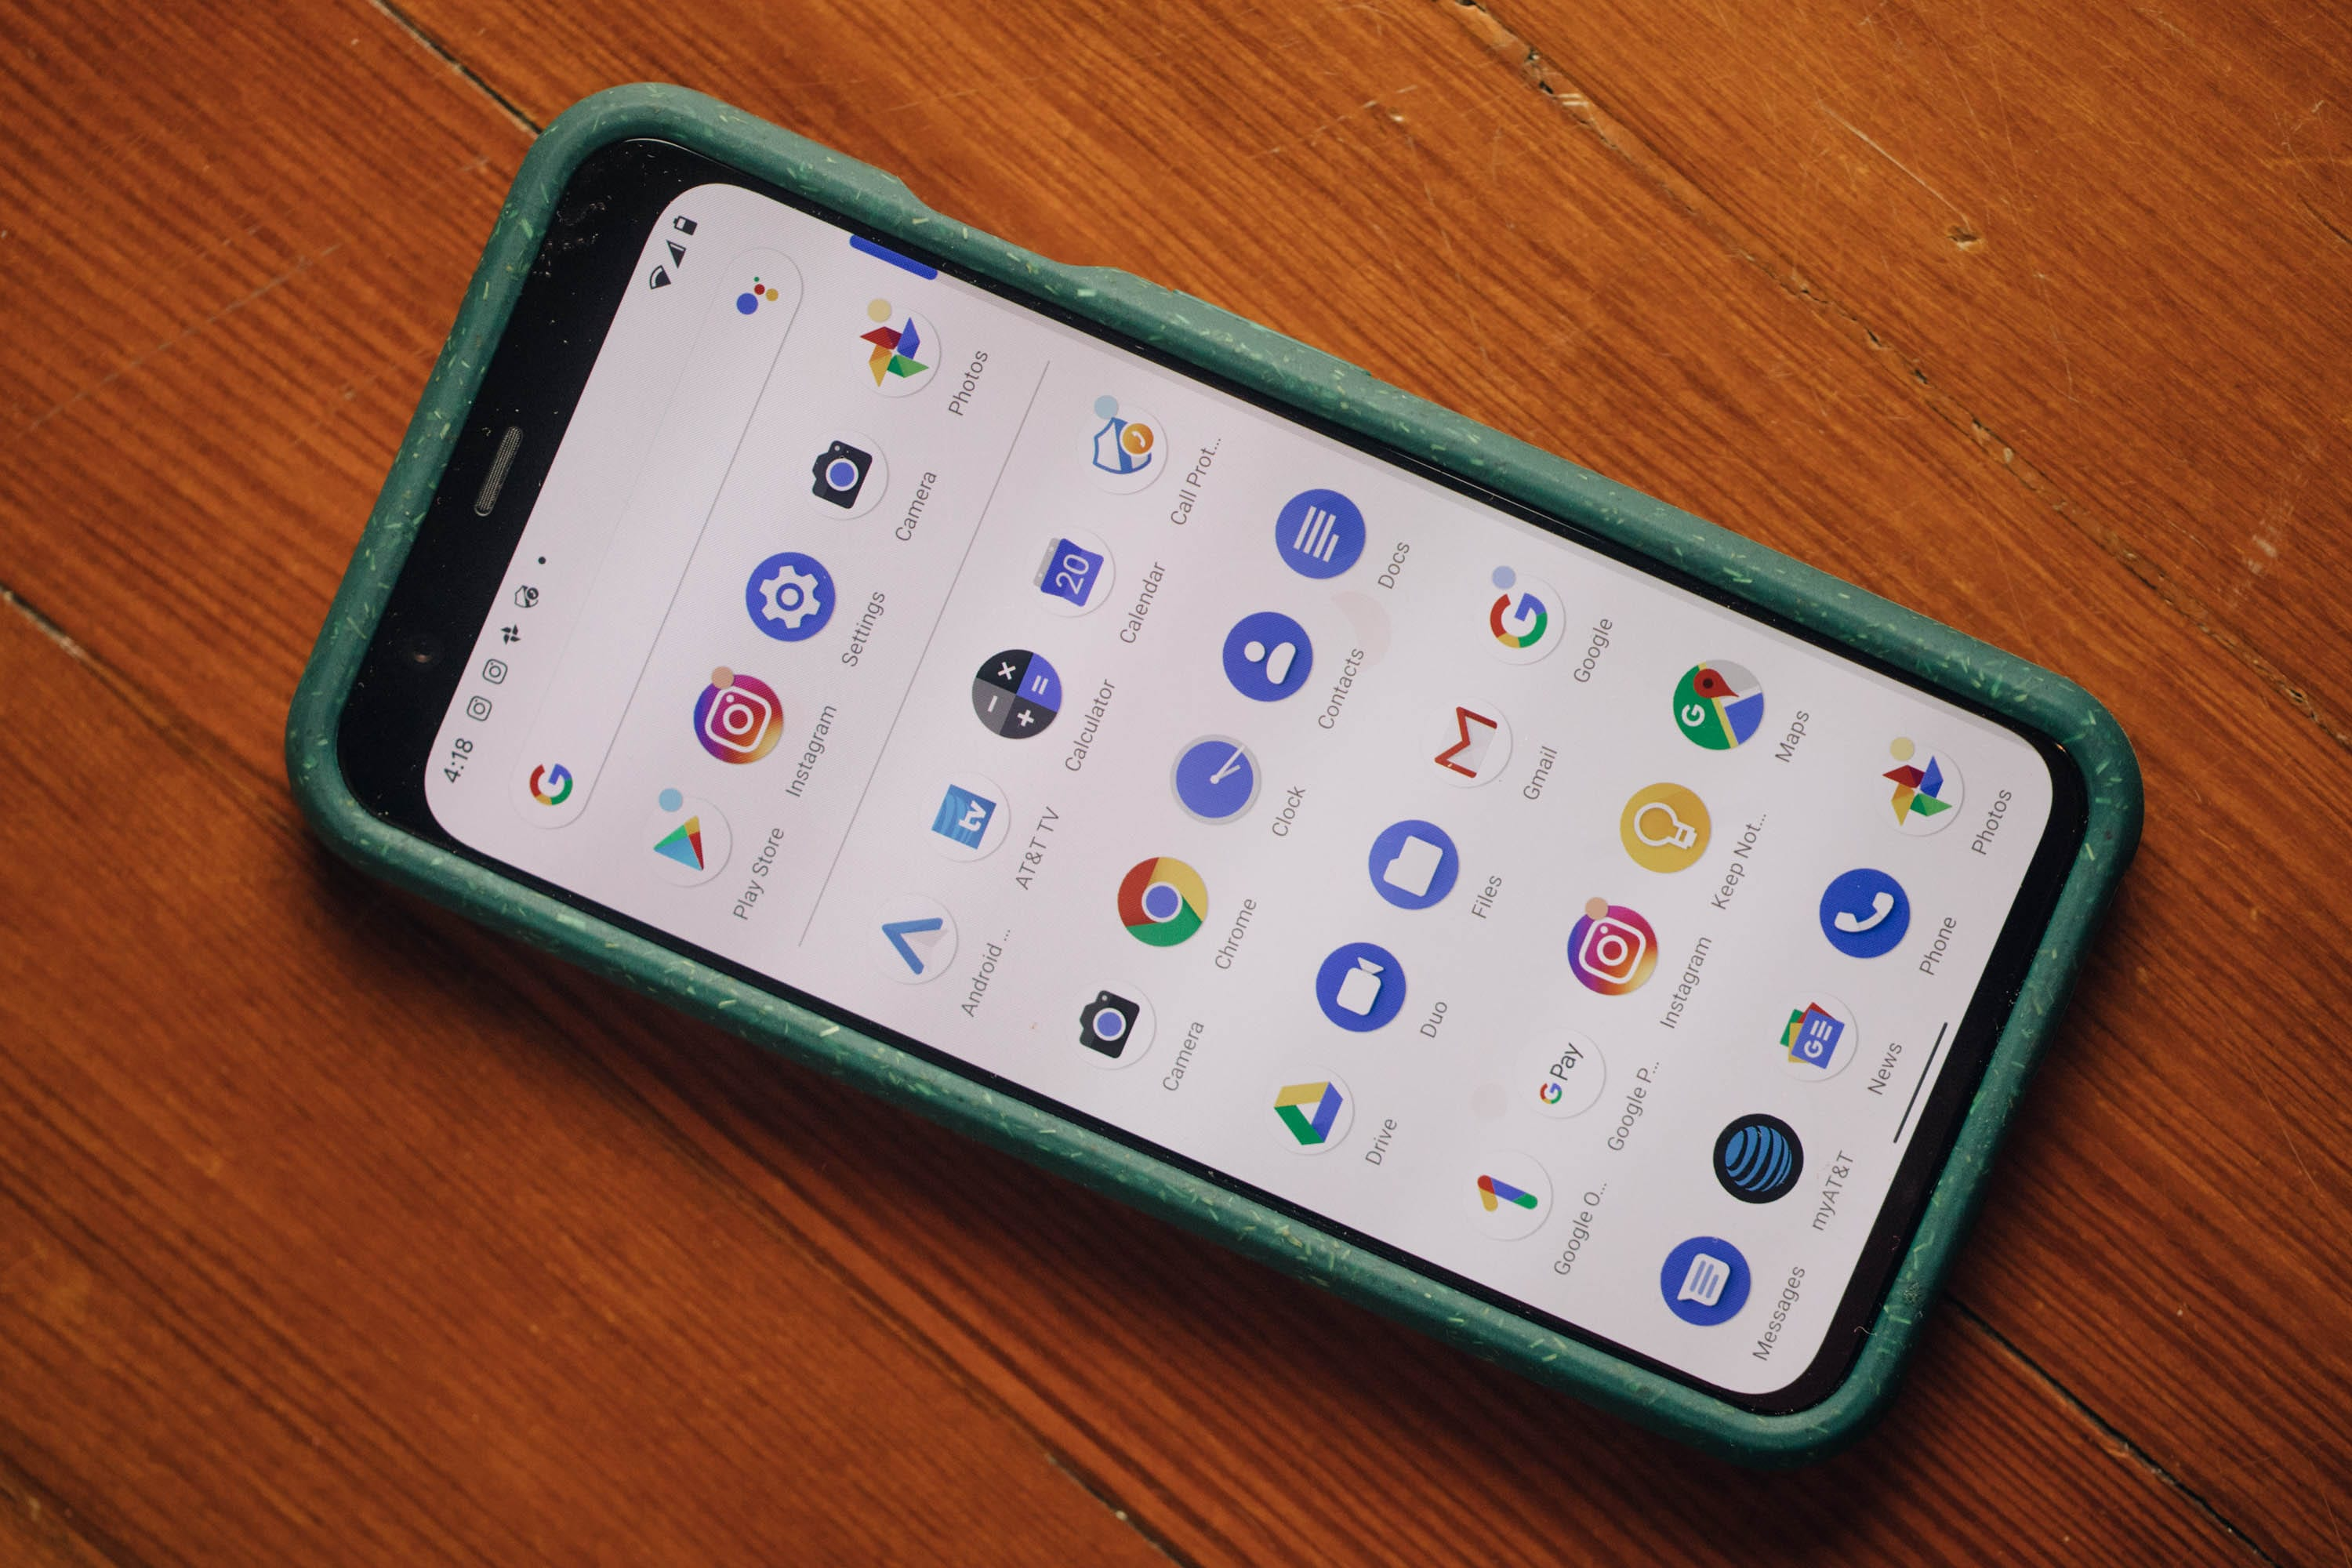 Pixel 4 review: Google ups its camera game - The How-To Zone